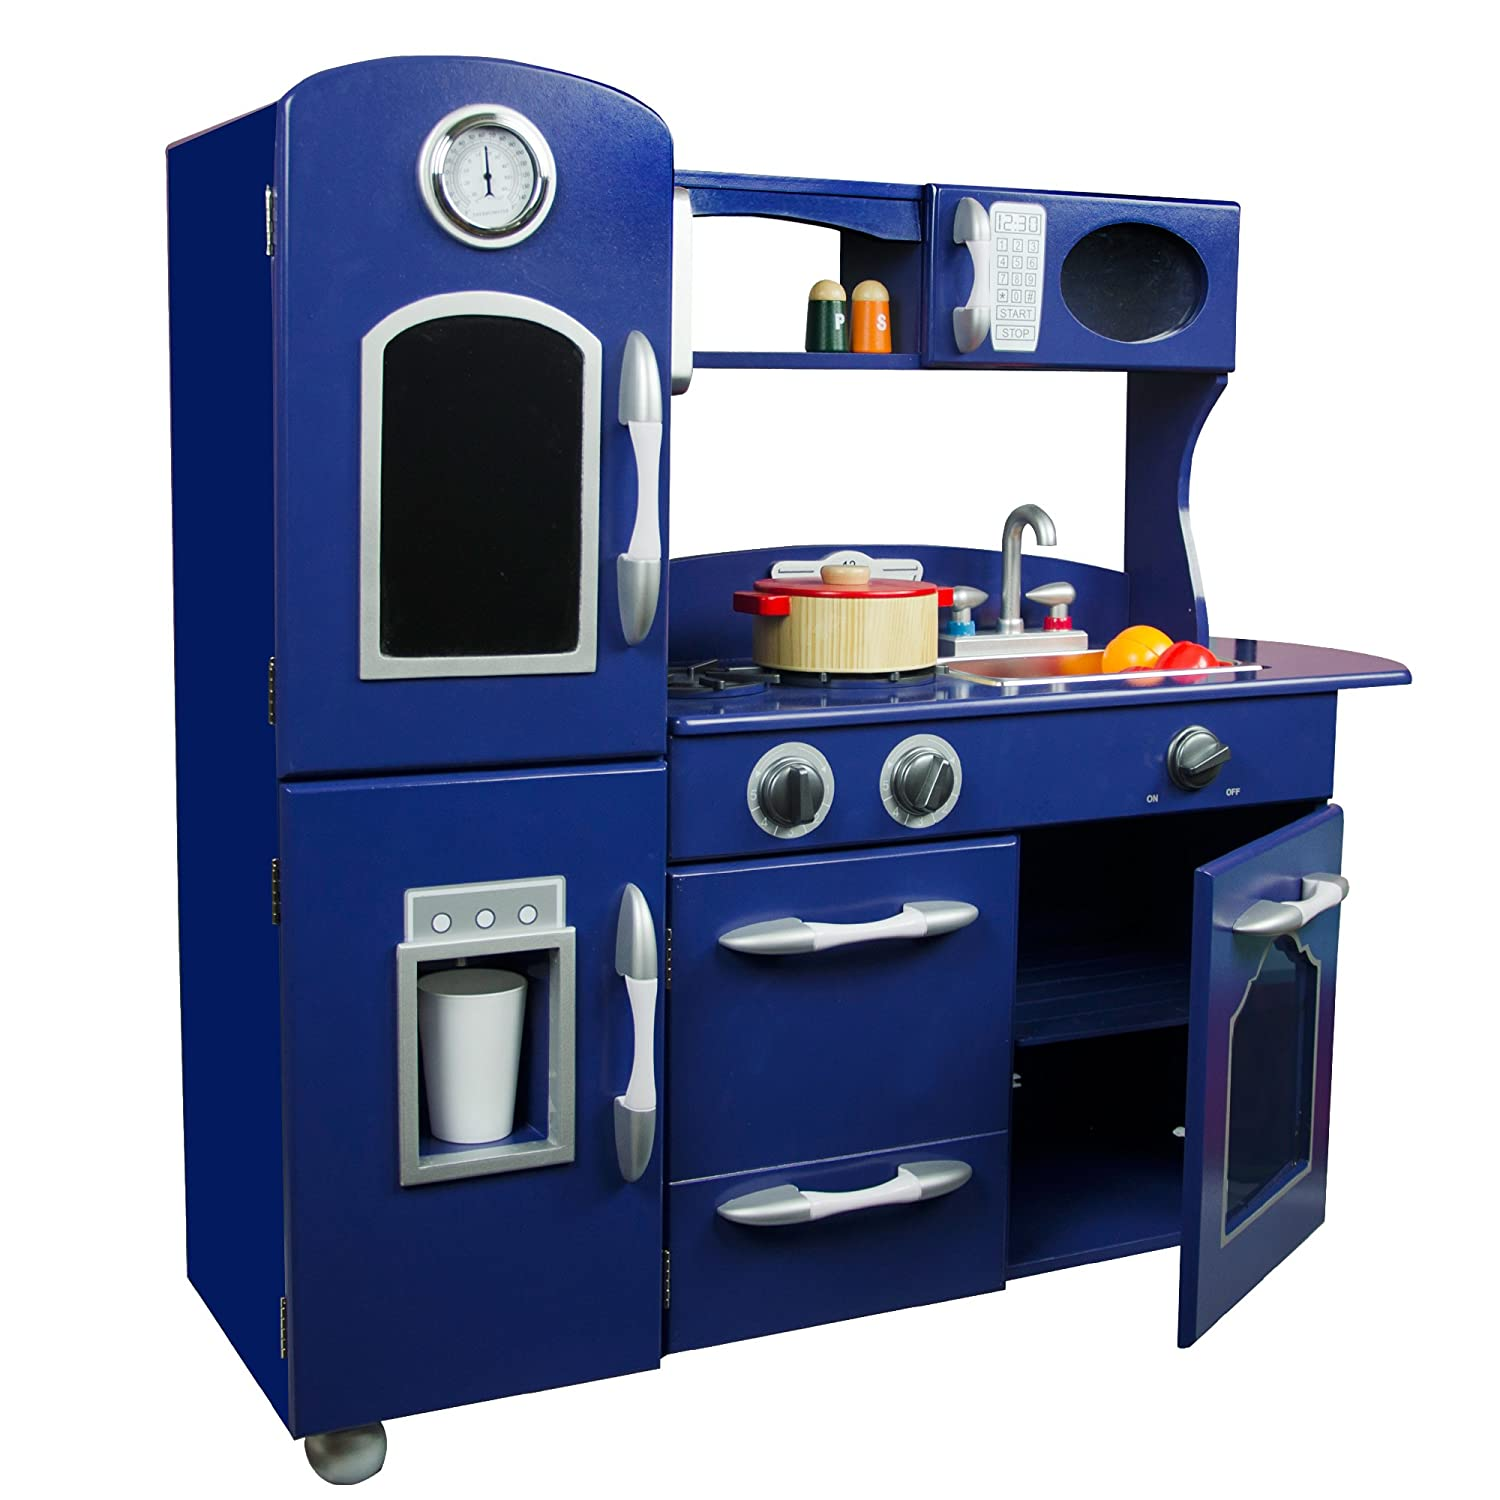 teamson kids  wooden retro play kitchen for toddler with  - teamson kids  wooden retro play kitchen for toddler with chalkboardrefrigerator oven and dishwasher  navy blue ( piece)  pretend playamazoncouk